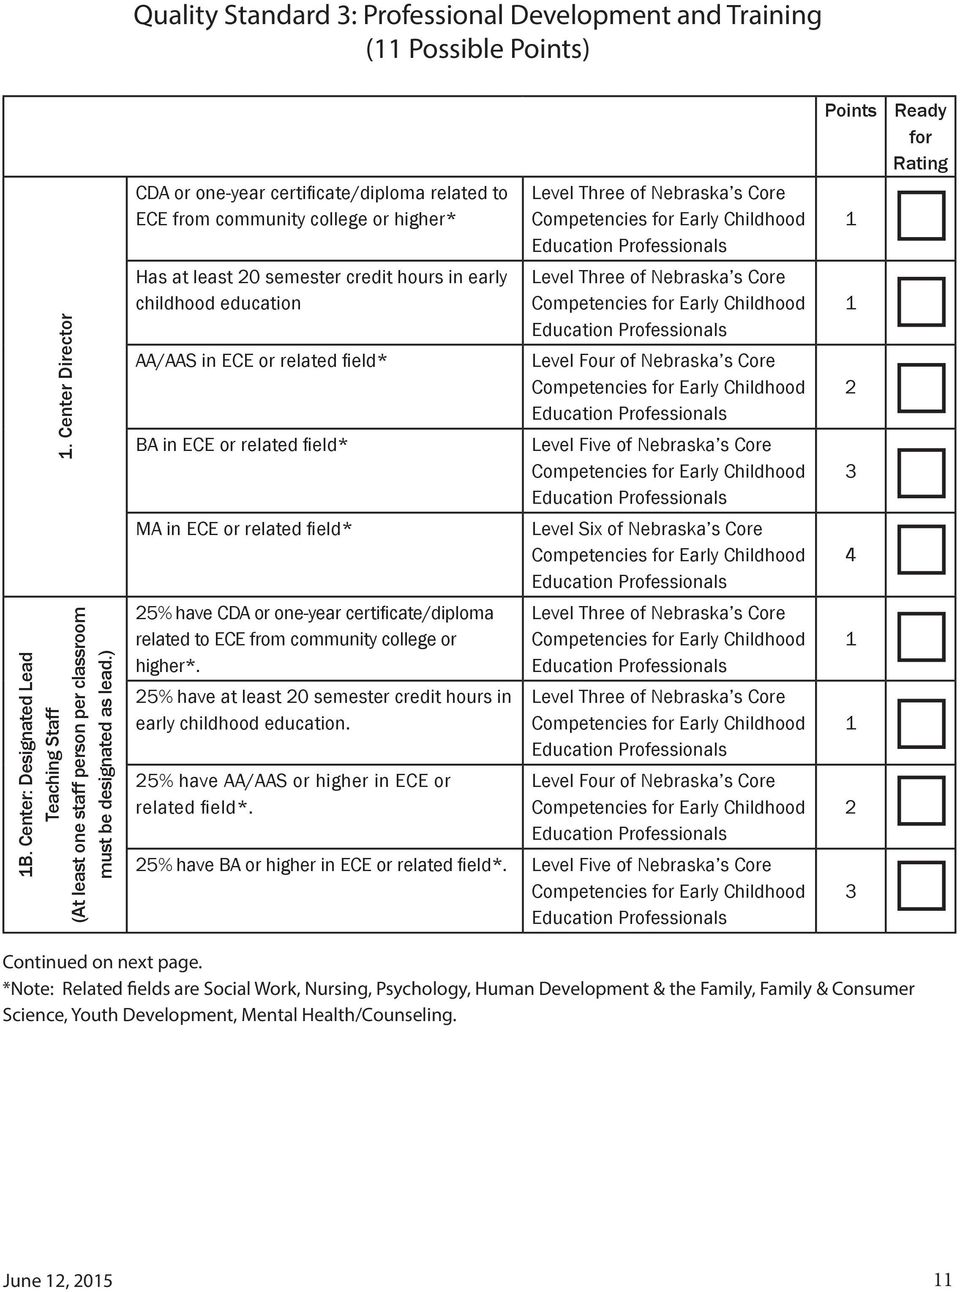 Rating Readiness Tool Rrt And Request For On Site Observation And